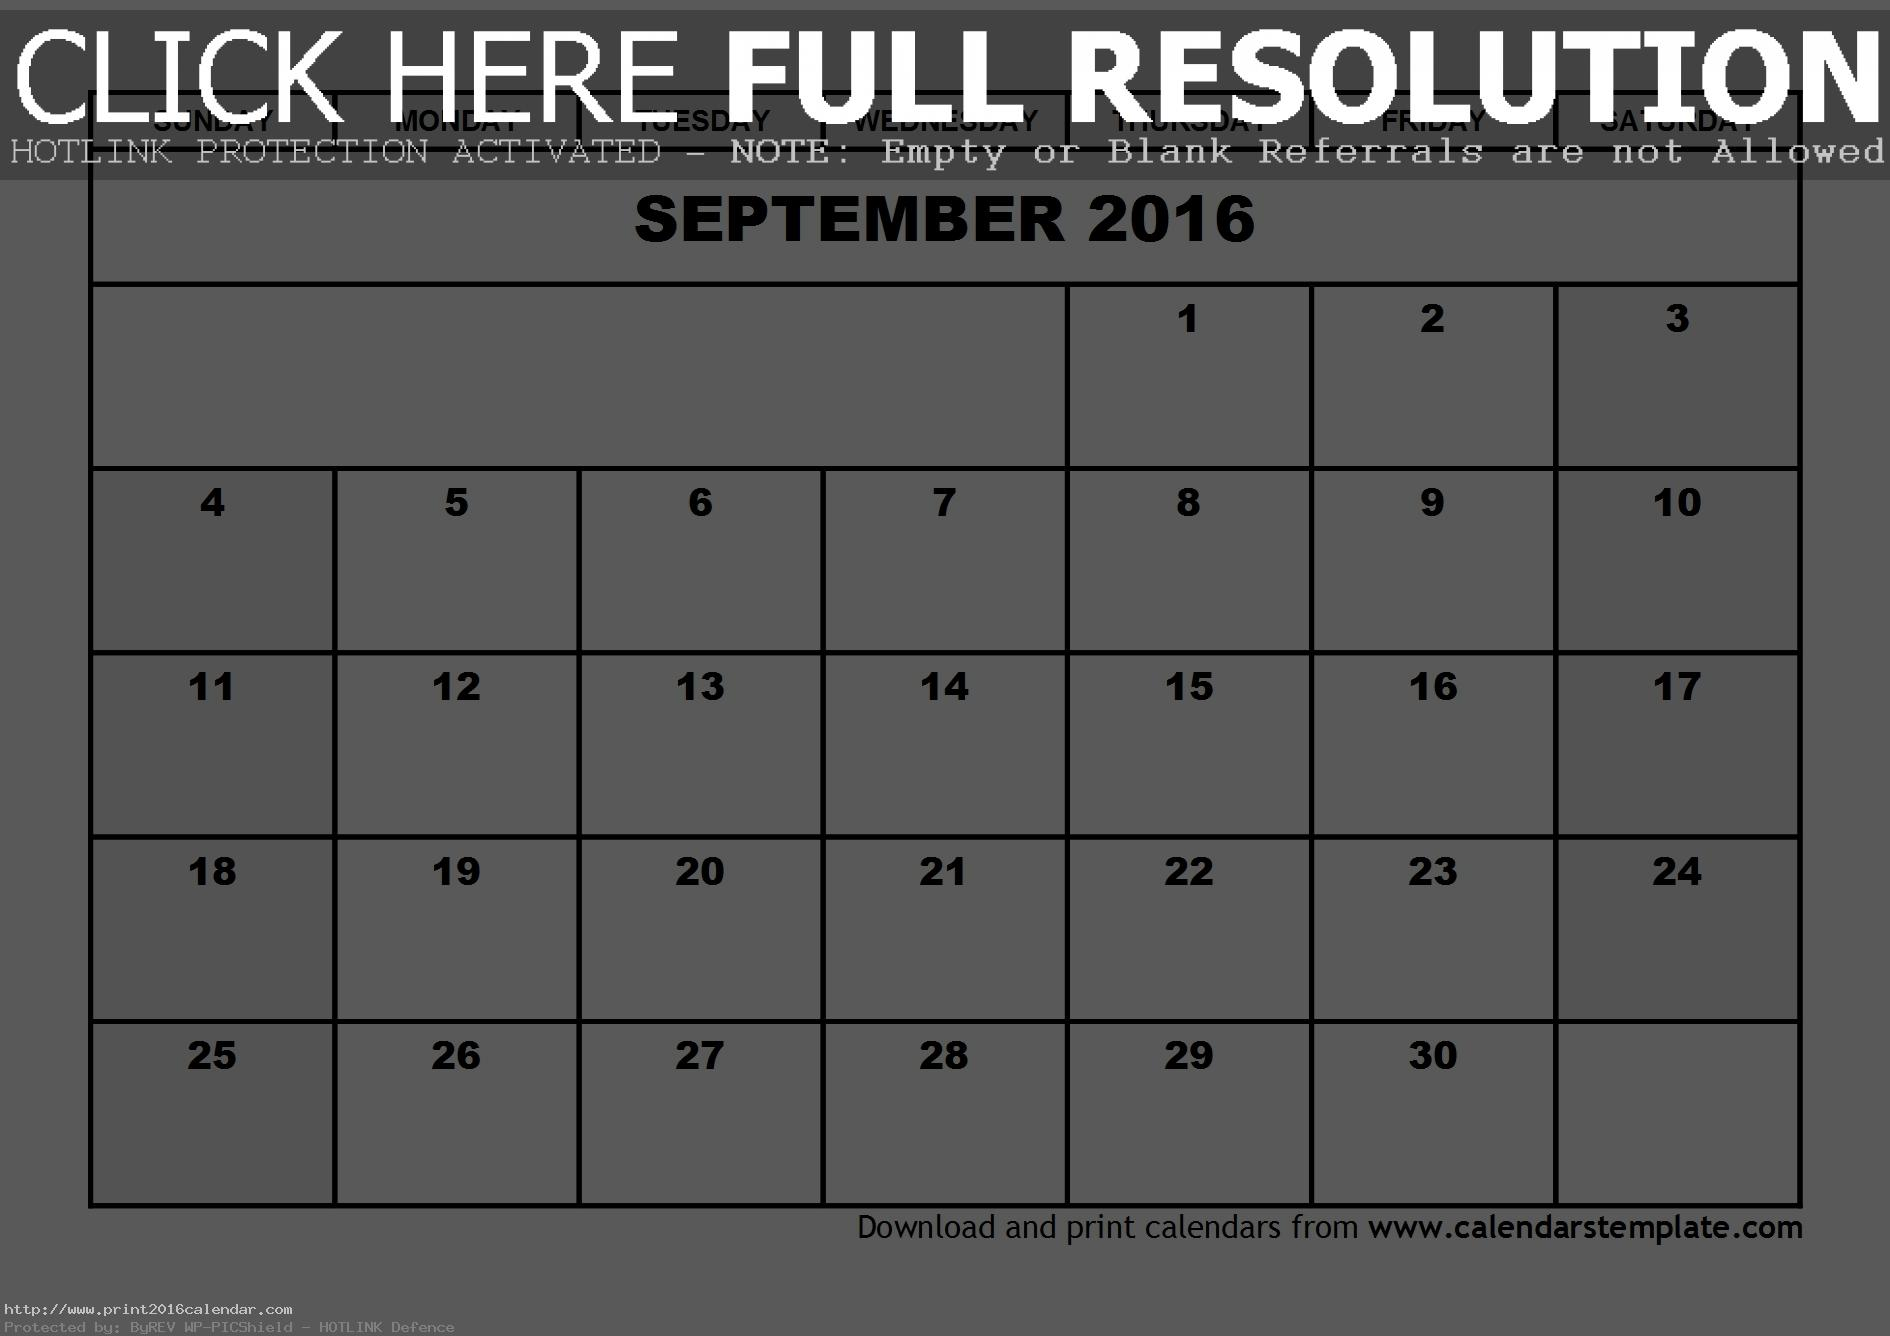 September 2016 Calendar Pdf To Print, Sep 2016 Calendar Pdf To Print, 2016 Calendar Pdf Printable Calendar and Pdf Printable September 2016 Calendar With Holidays